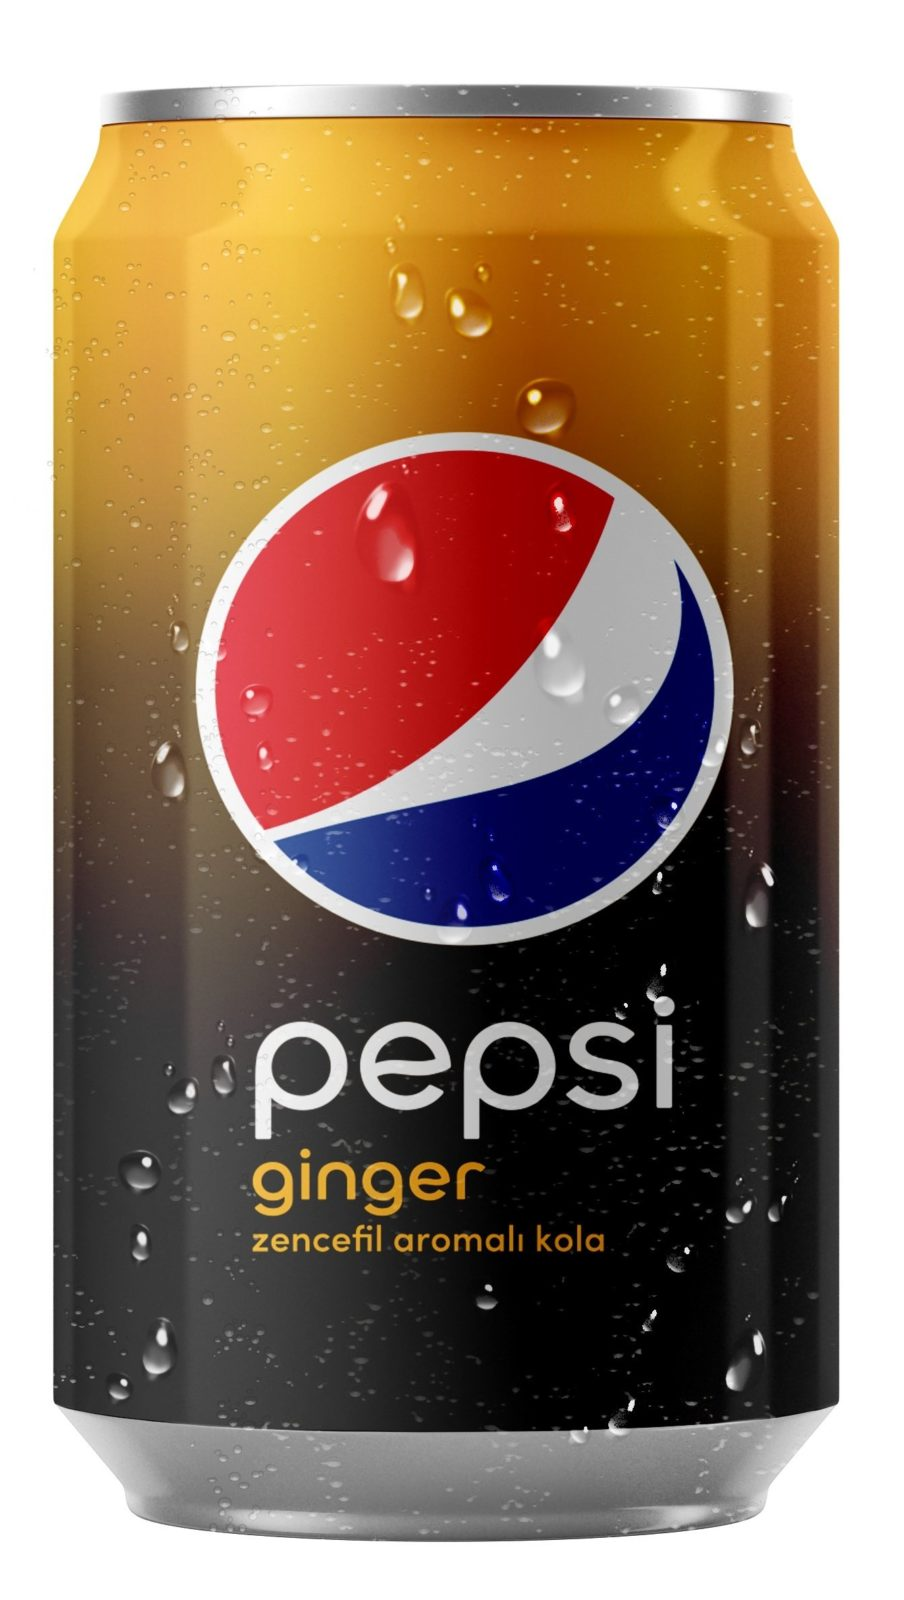 1576657537_Pepsi_Ginger_Can_330_jpg